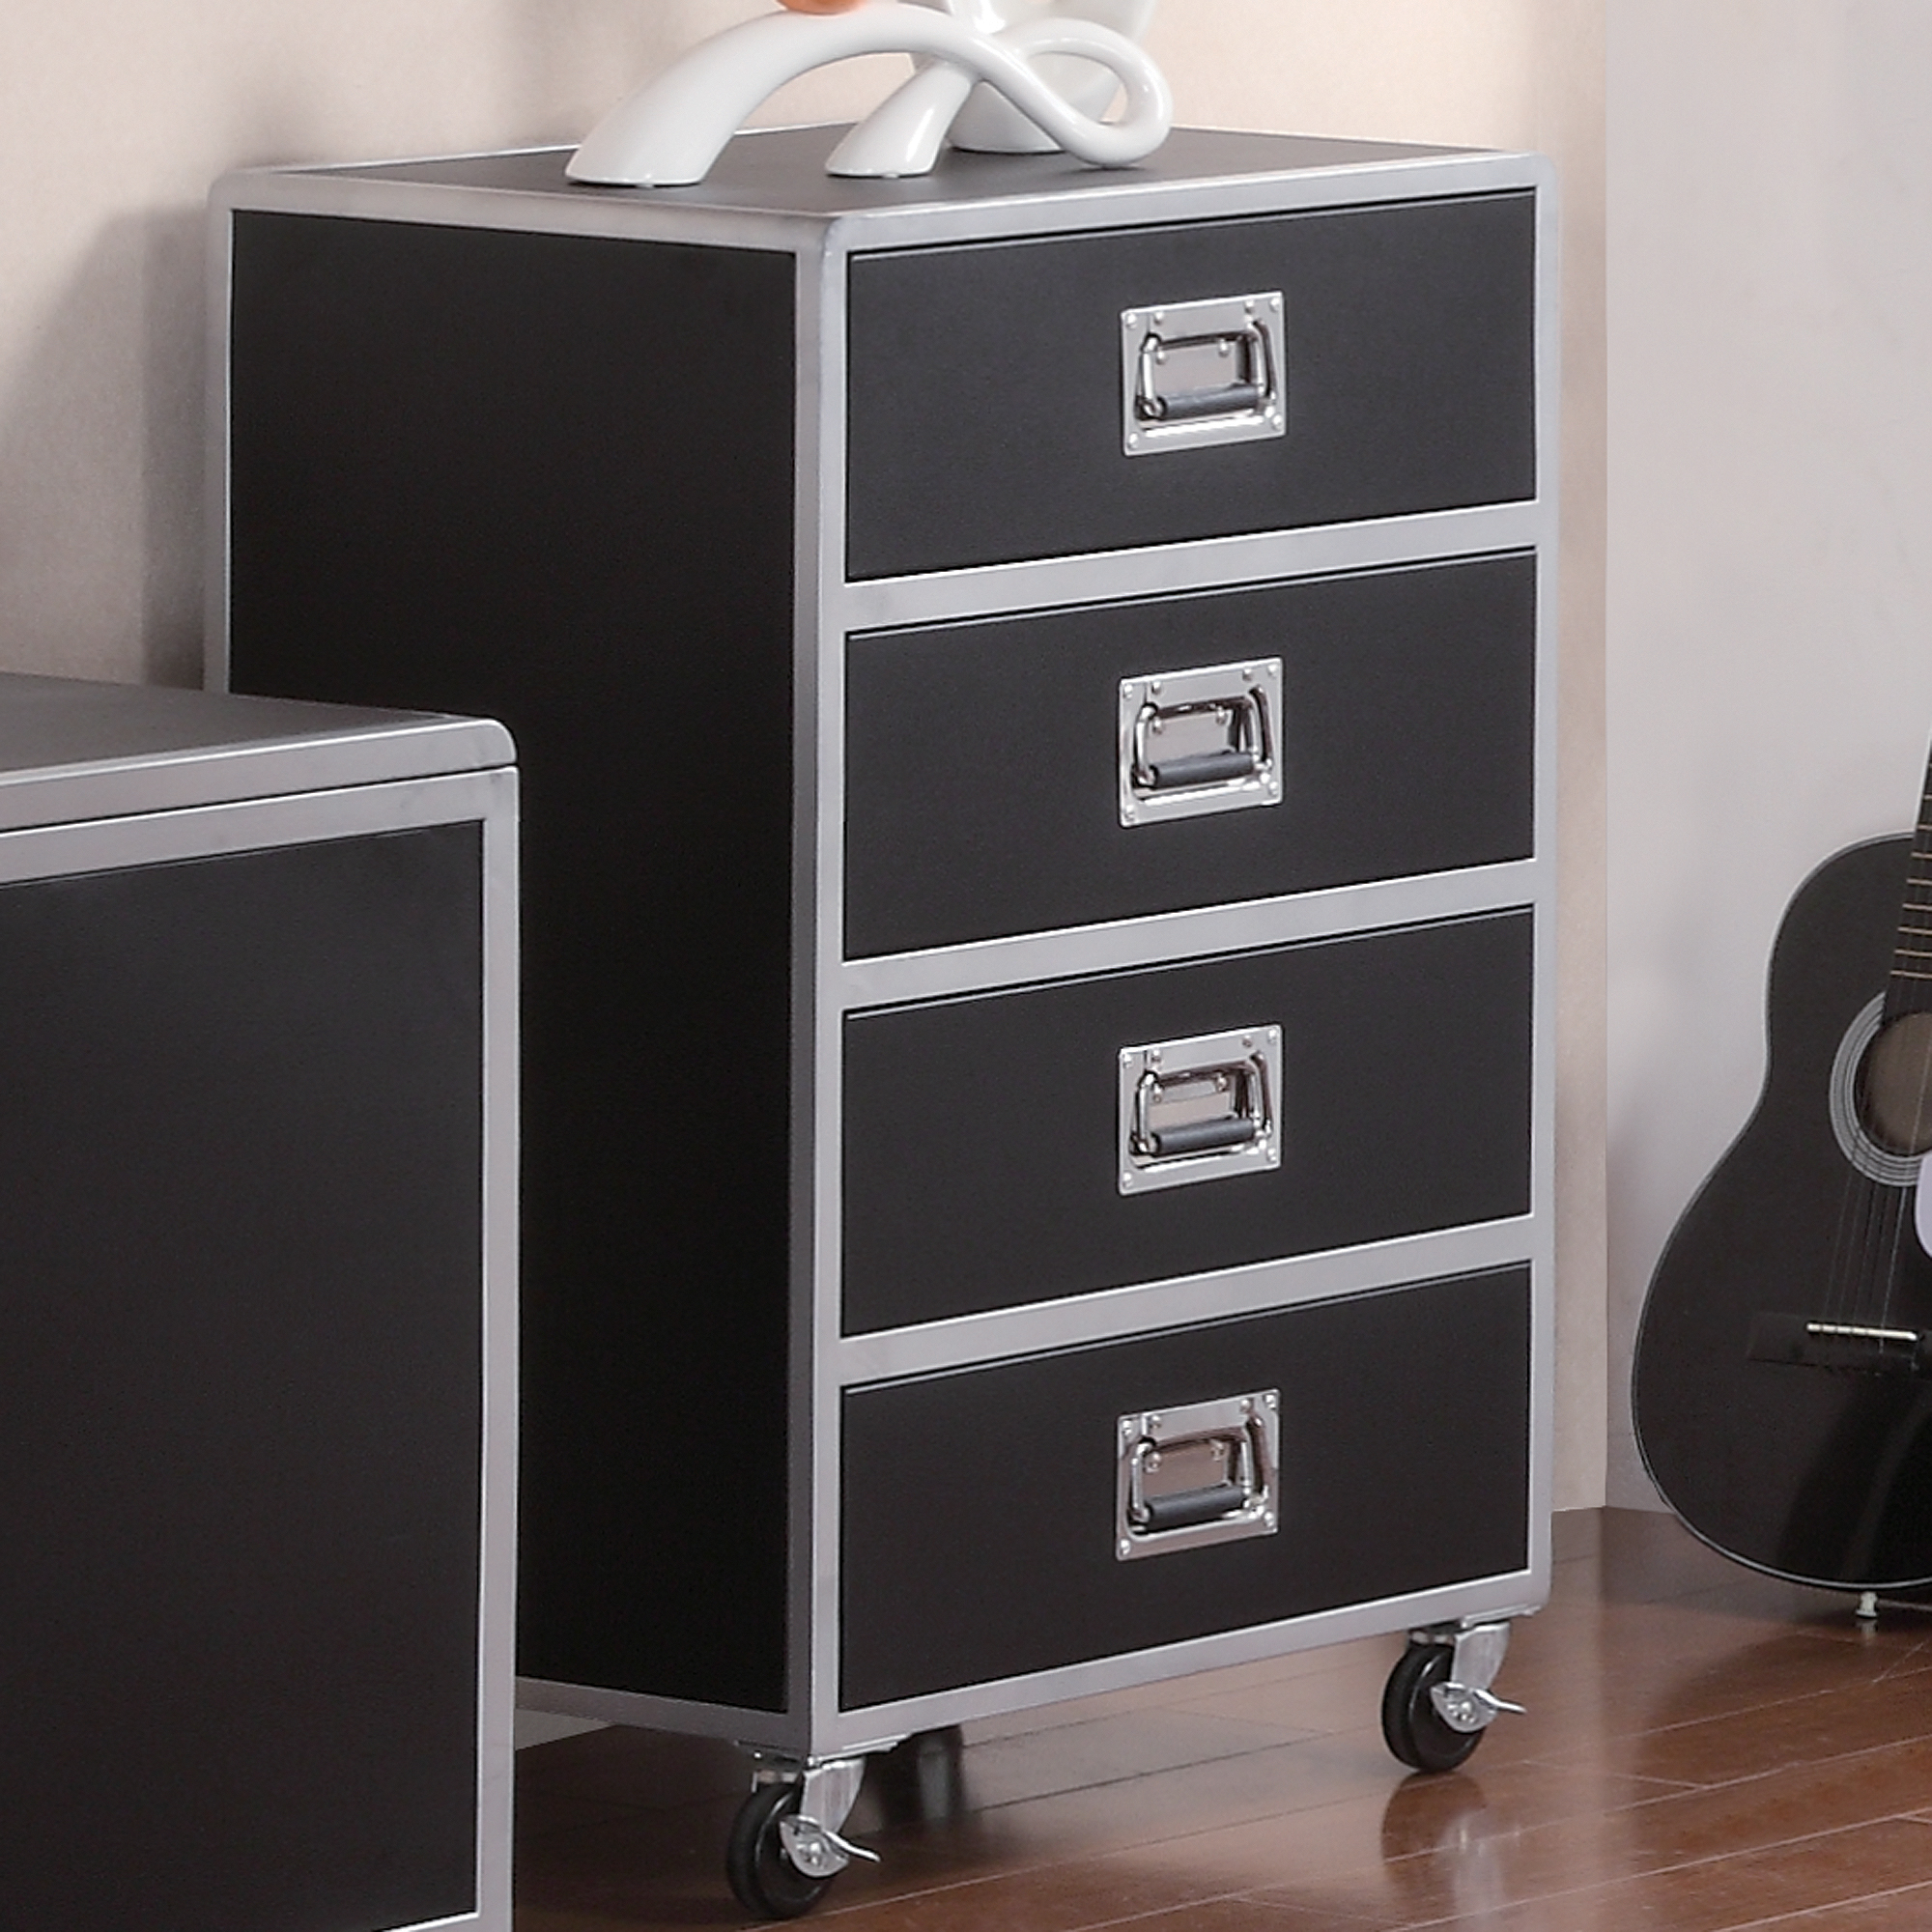 Coaster Company LeClair 4 Drawer Chest, Black Silver Metal by Coaster Company